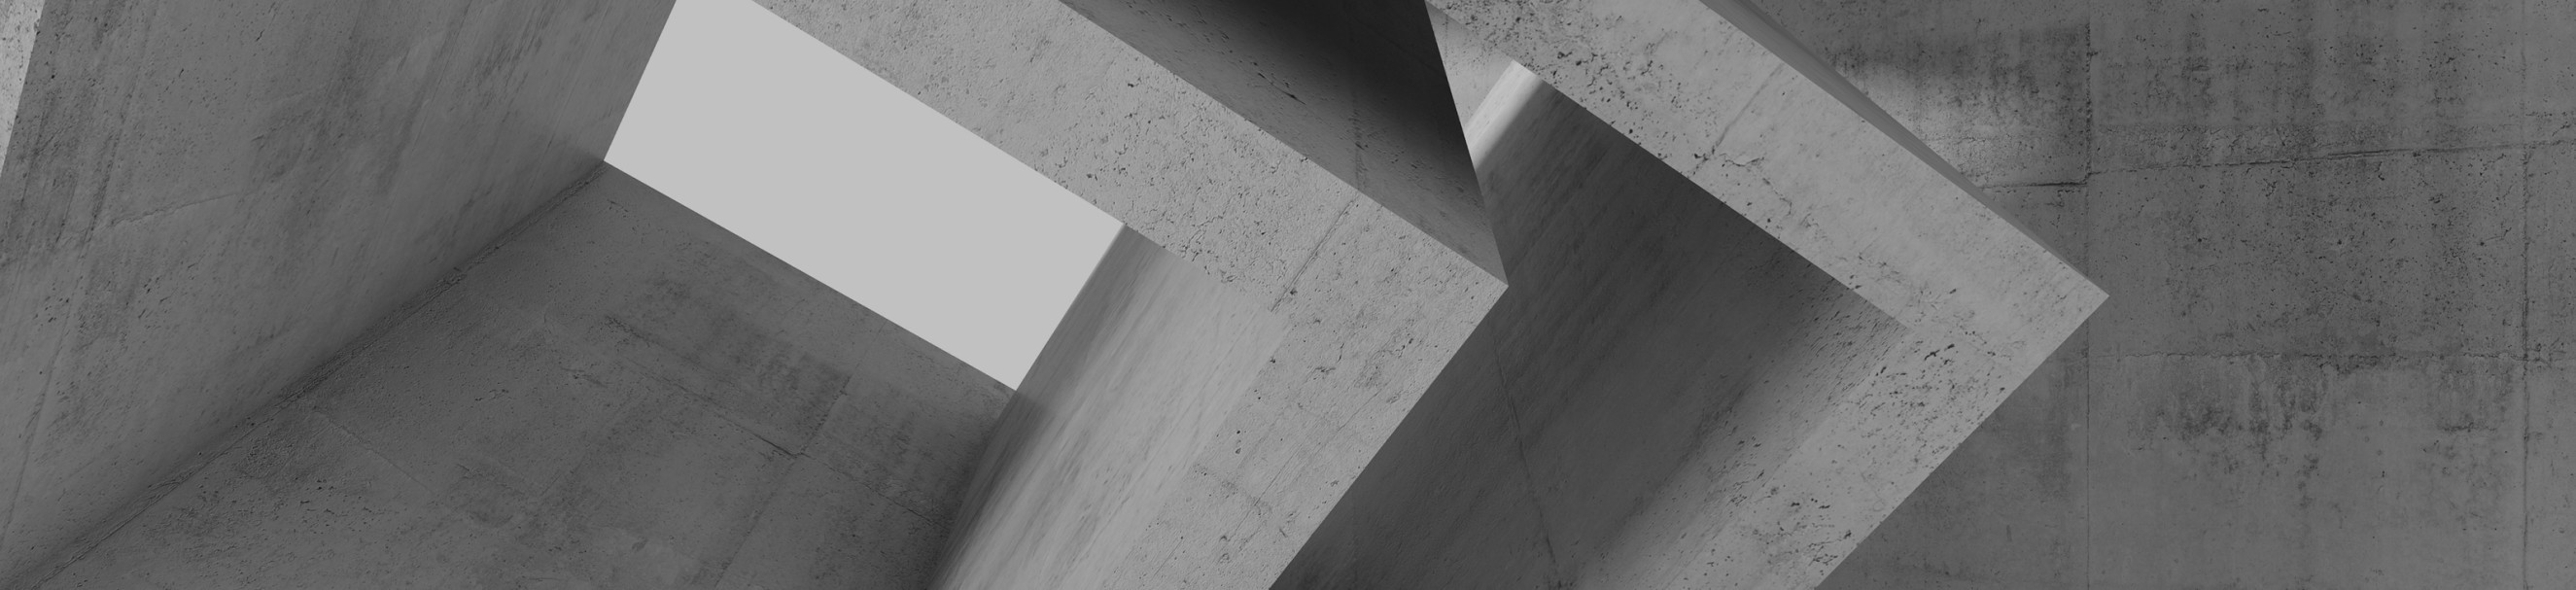 Abstract concrete shapes